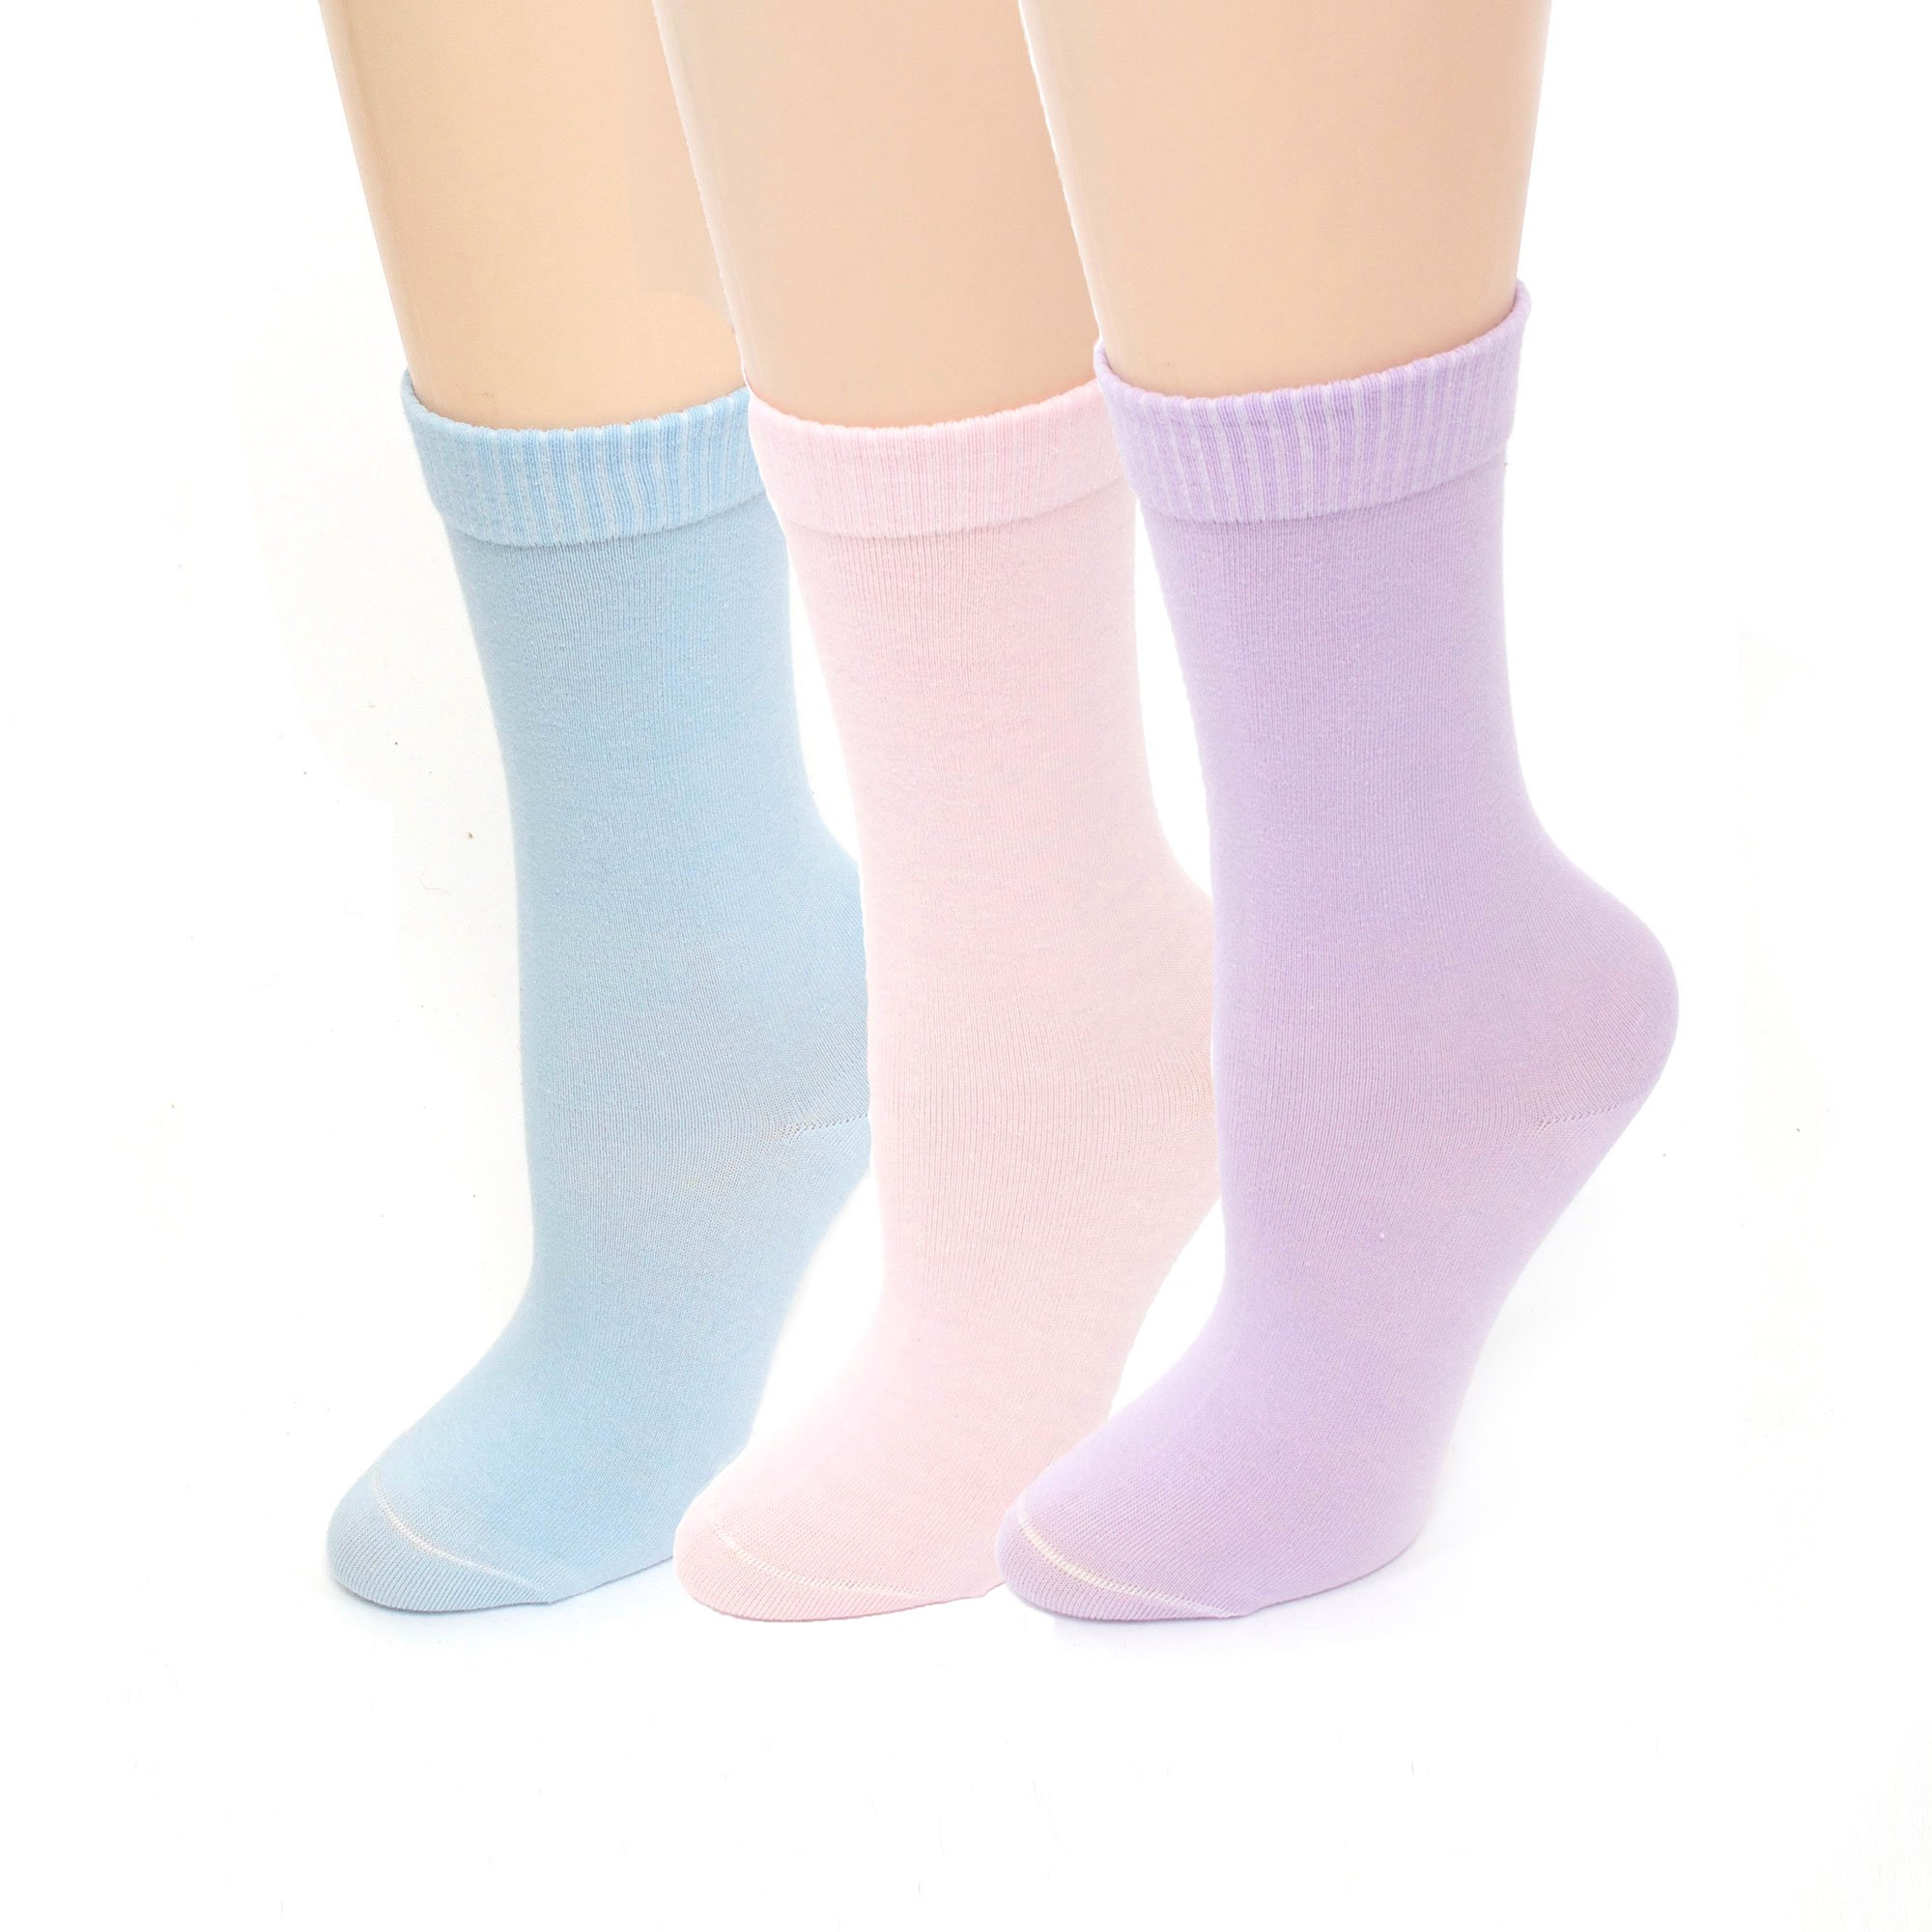 Amazon.com: Diabetic Socks | Womens White Ankle 3 Pack